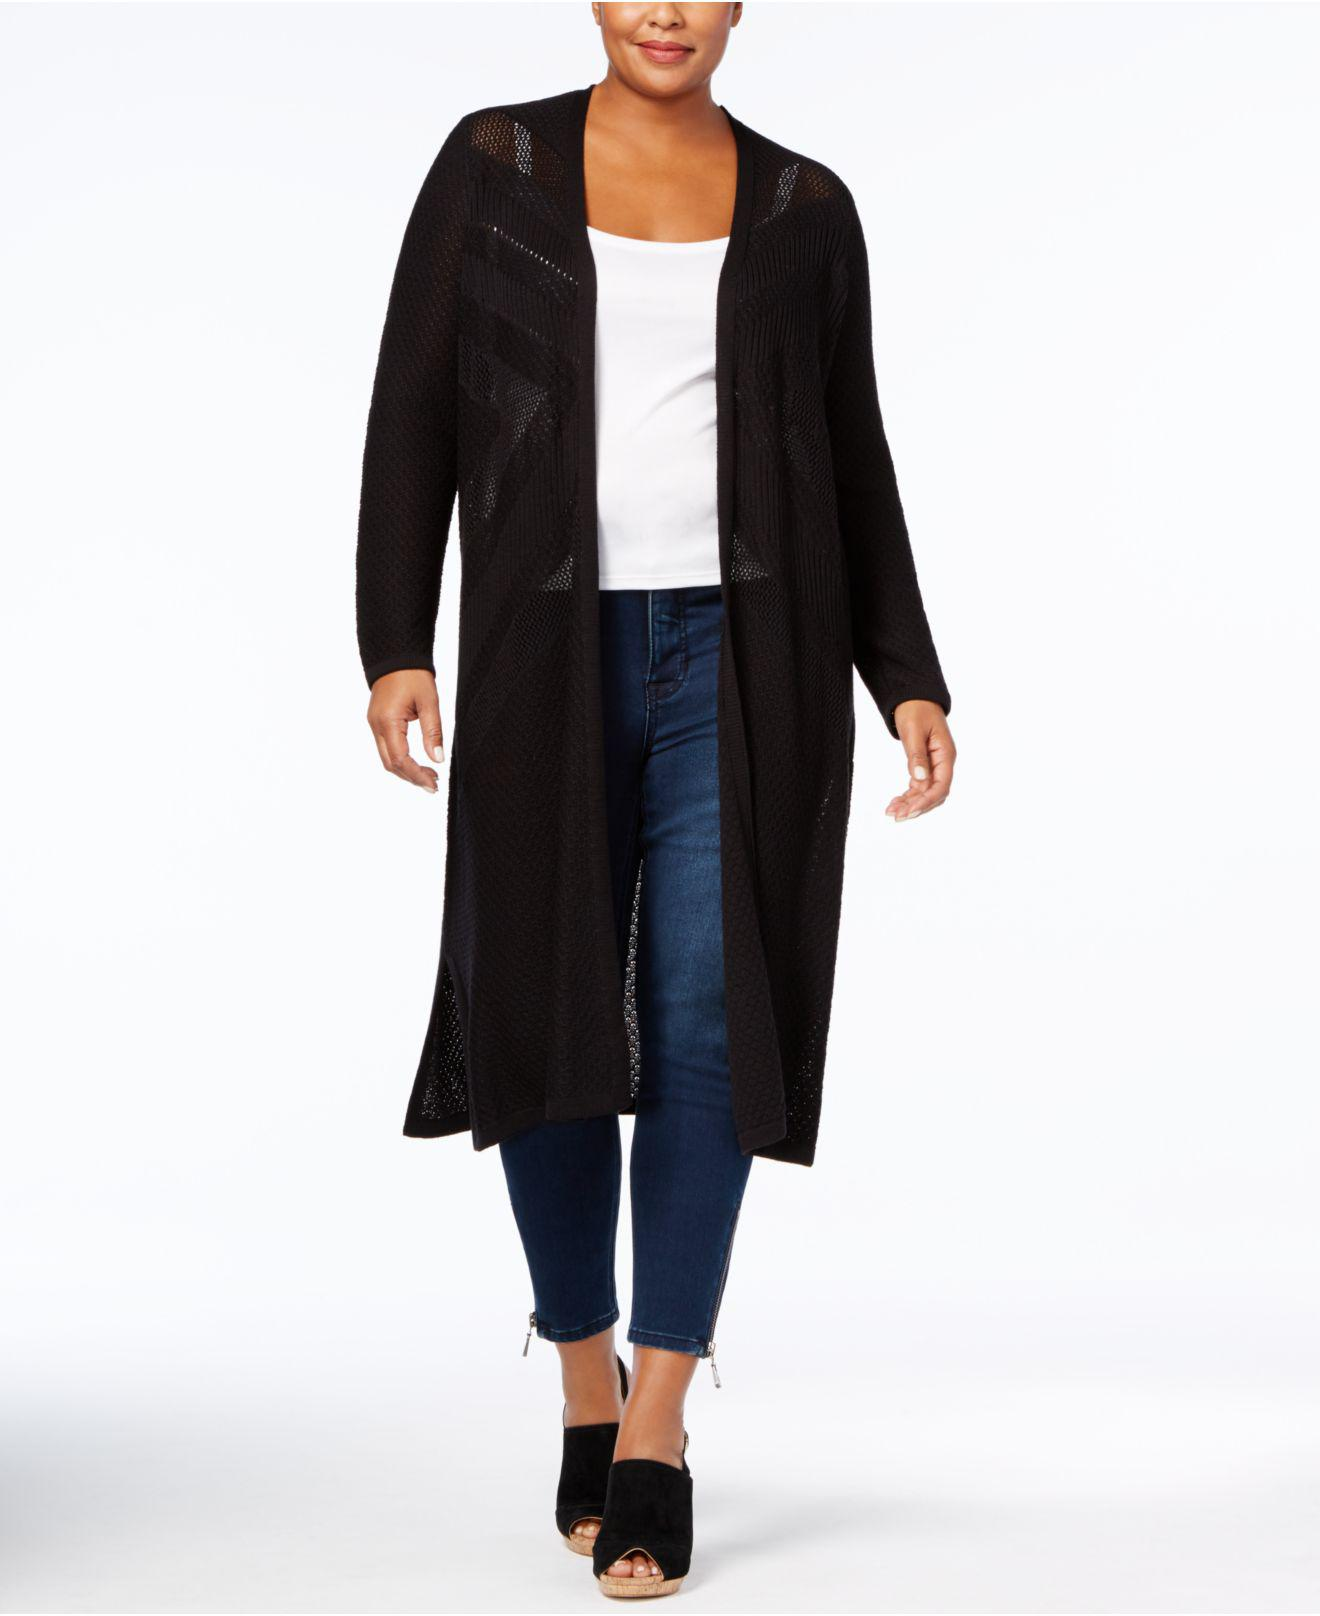 Style & co. Plus Size Open-front Duster Cardigan in Black | Lyst